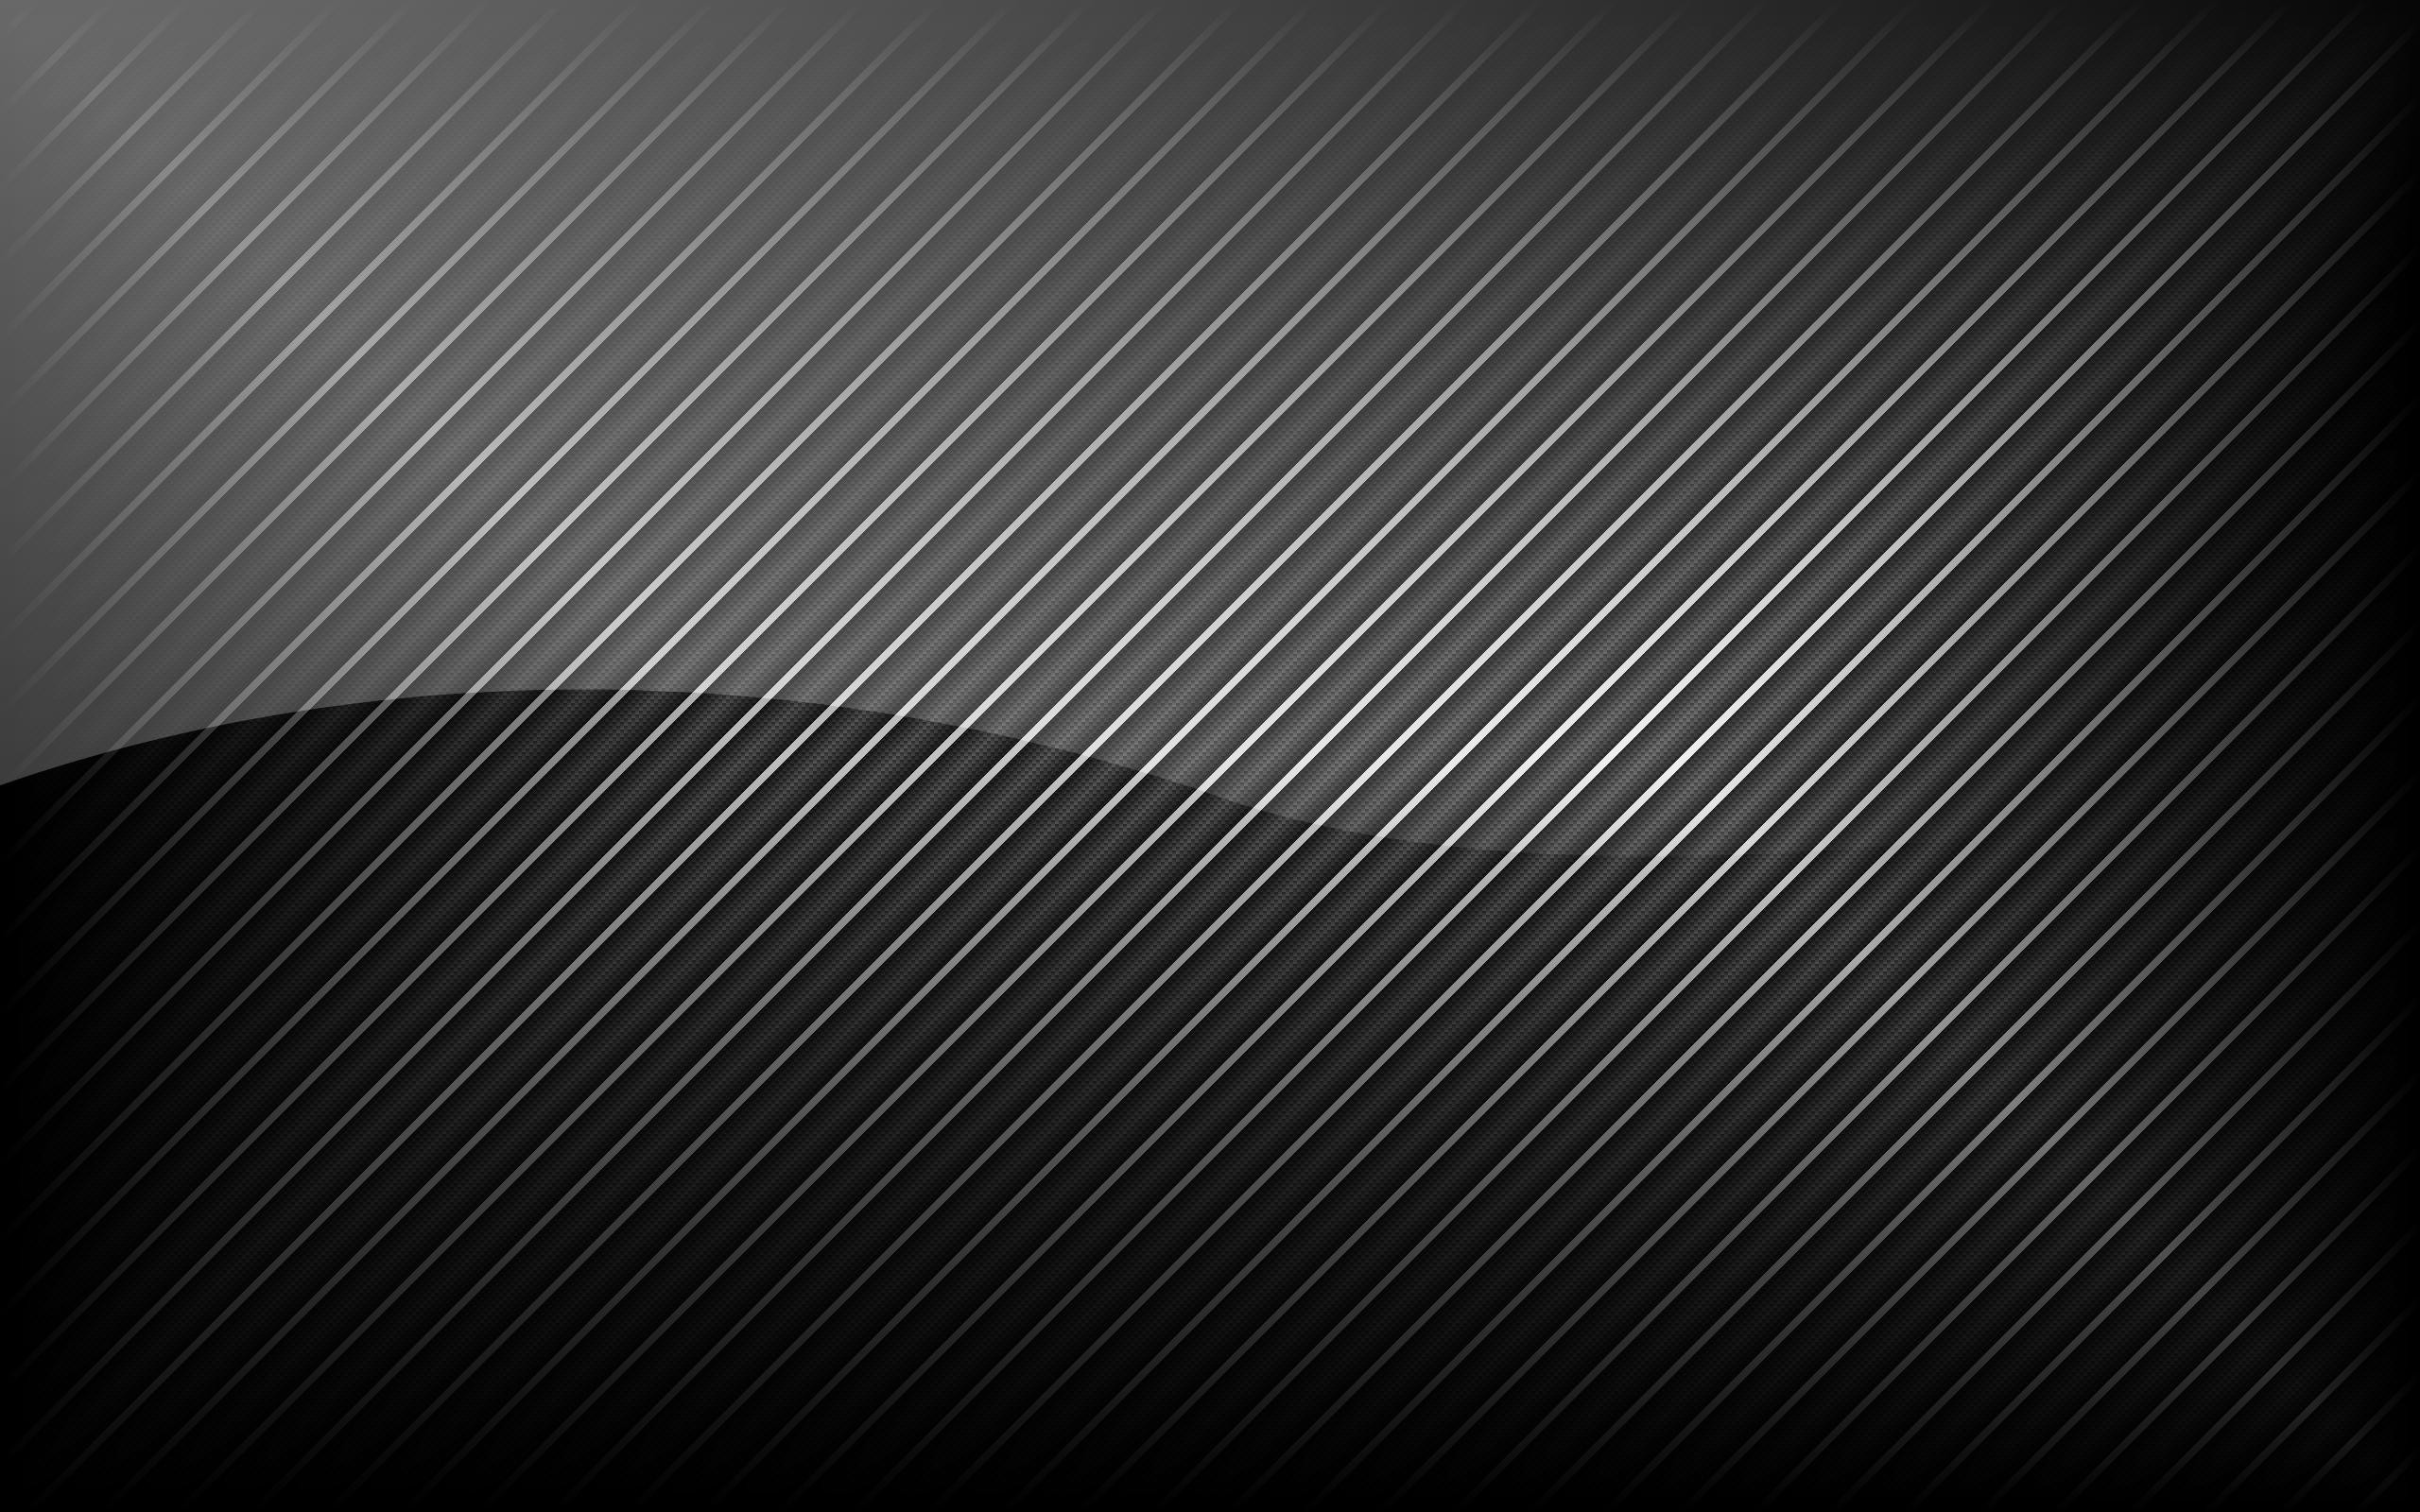 Carbon Fibre Iphone X Wallpaper Carbon Fiber Background 183 ① Download Free Hd Wallpapers For